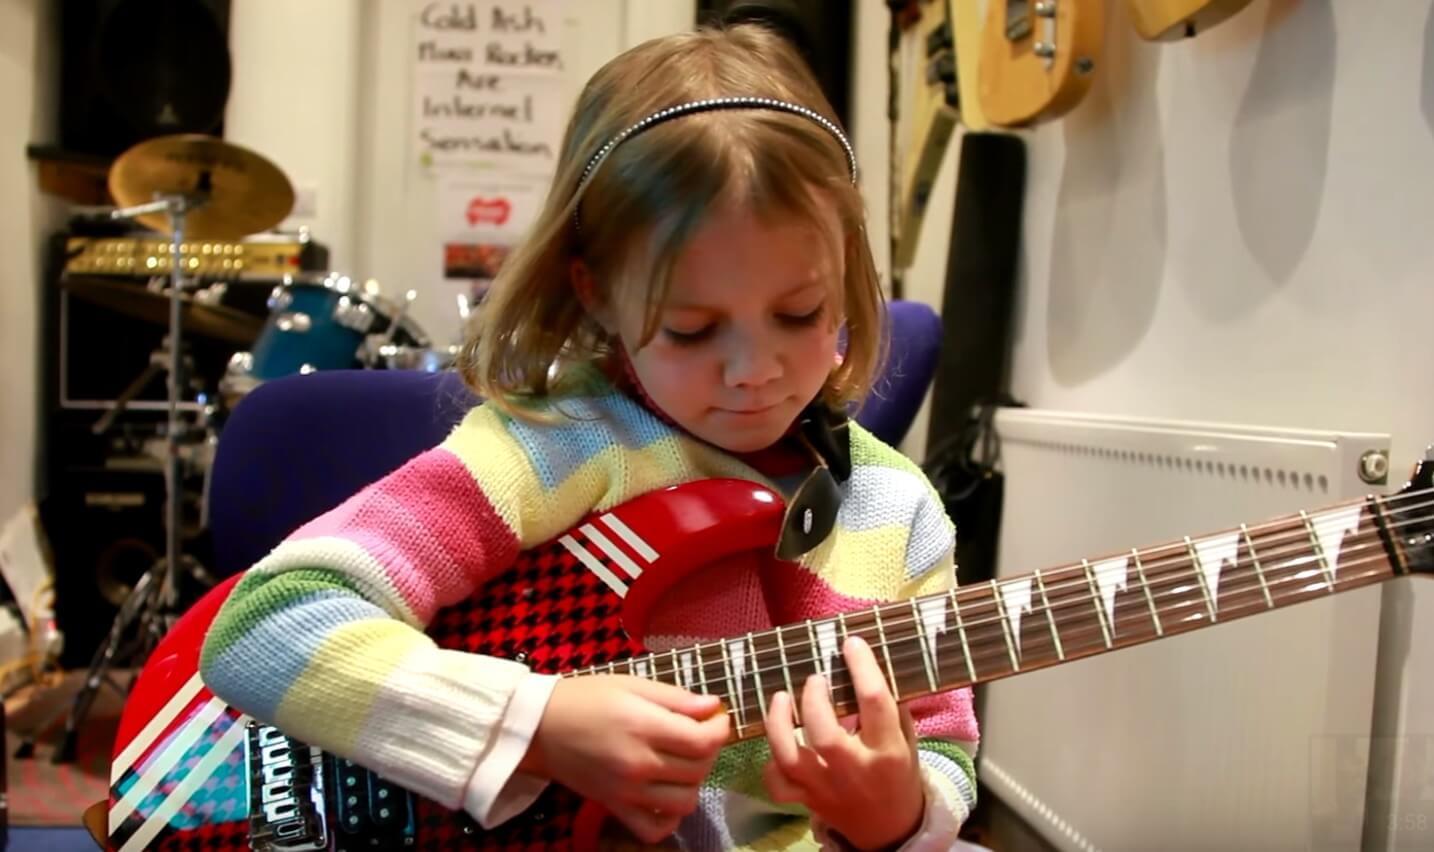 7 Year Old Guitarist